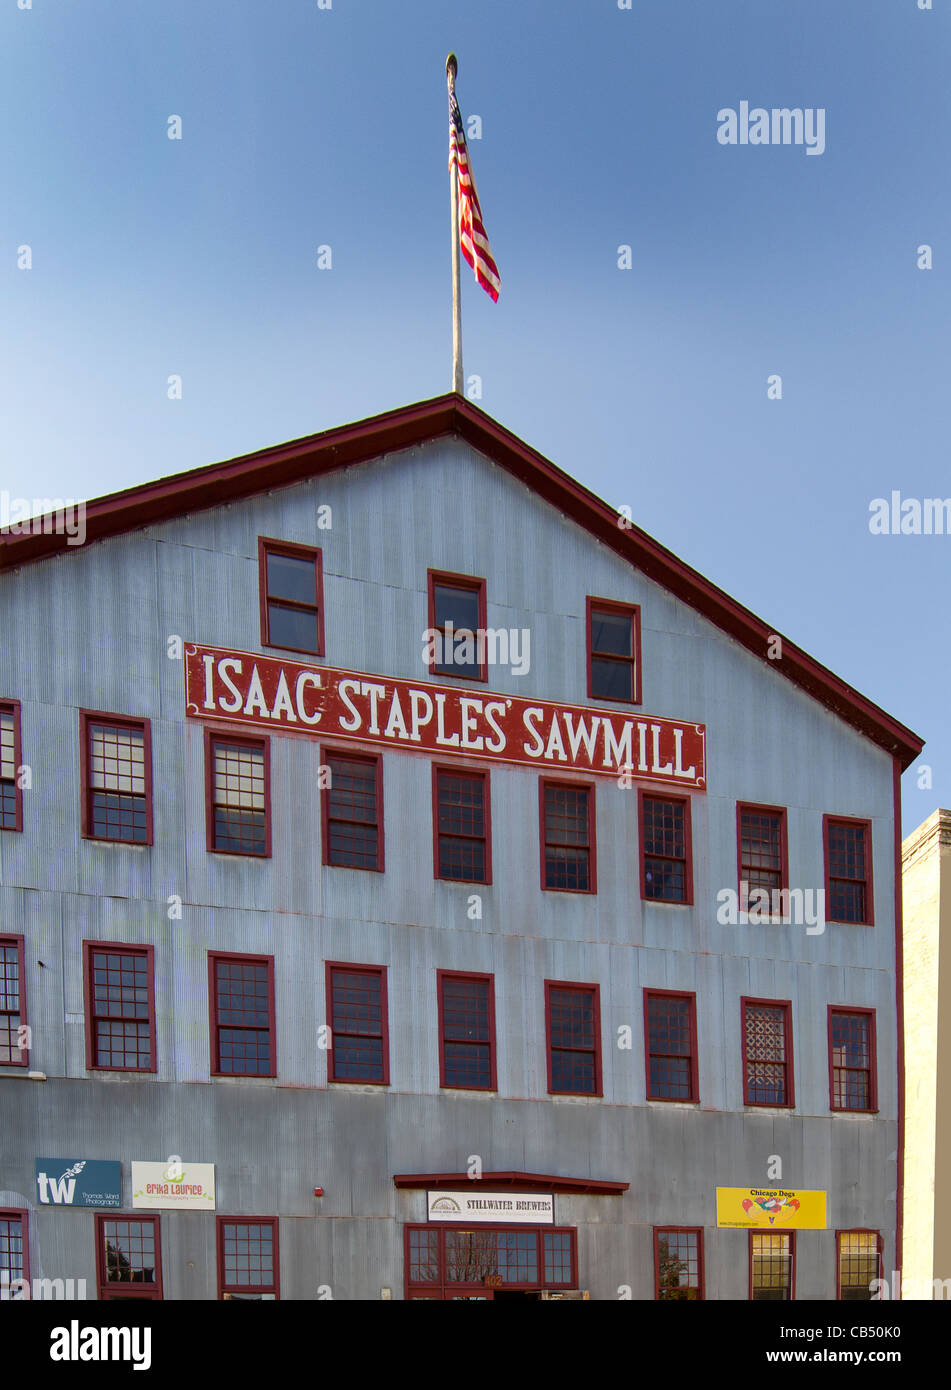 Isaac Staples Sawmill is a shopping mall located in the historic sawmill building in Stillwater, Minnesota - Stock Image